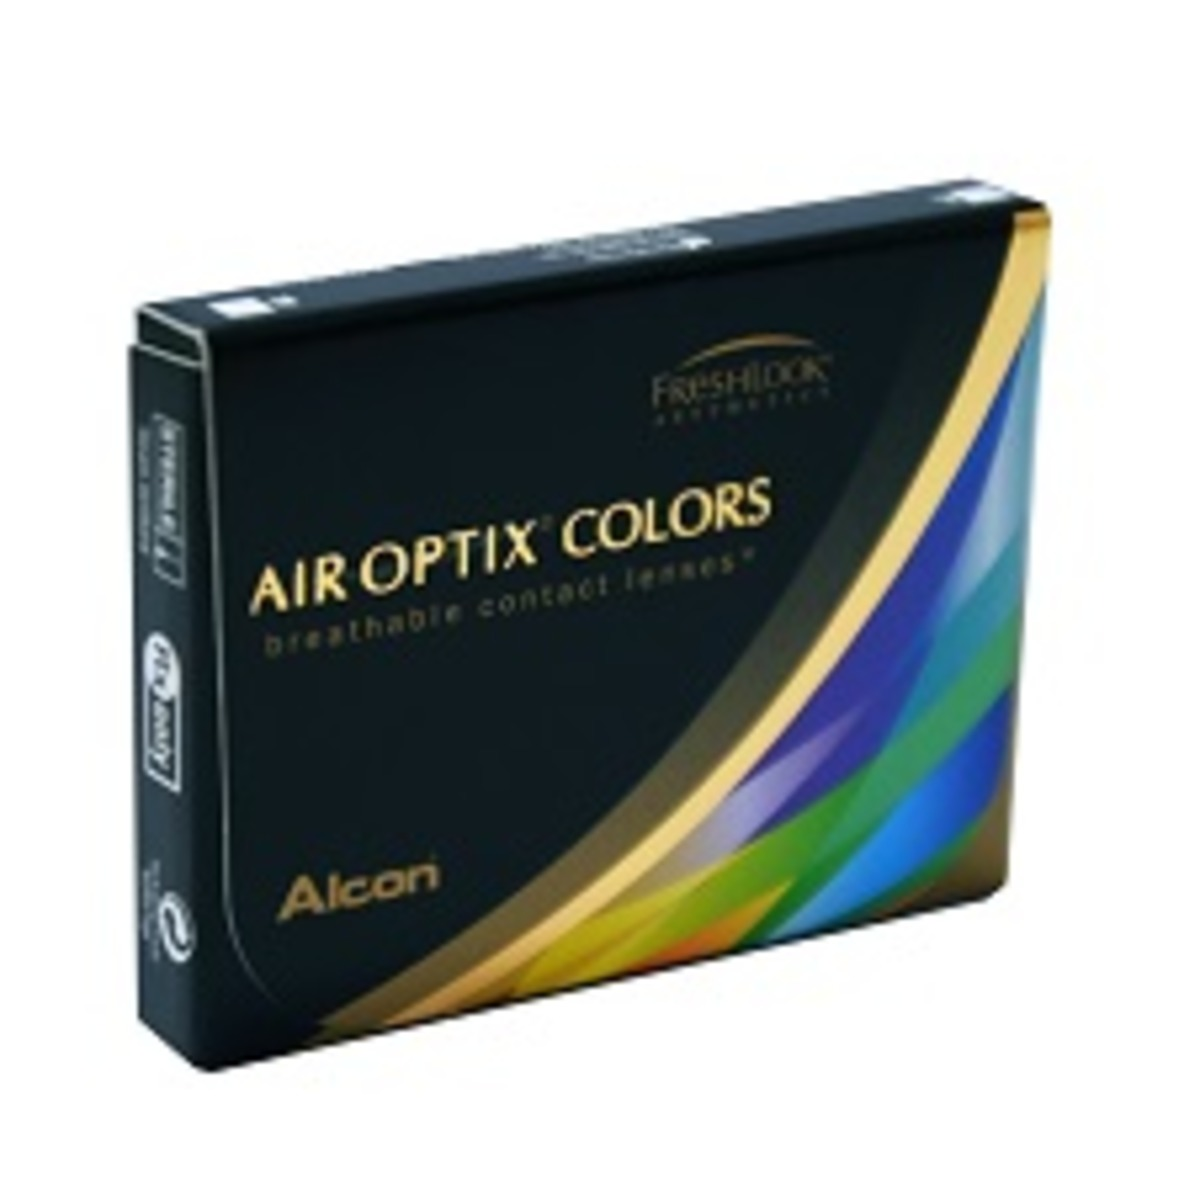 Air Optix Colors Caramel (Pure Hazel)